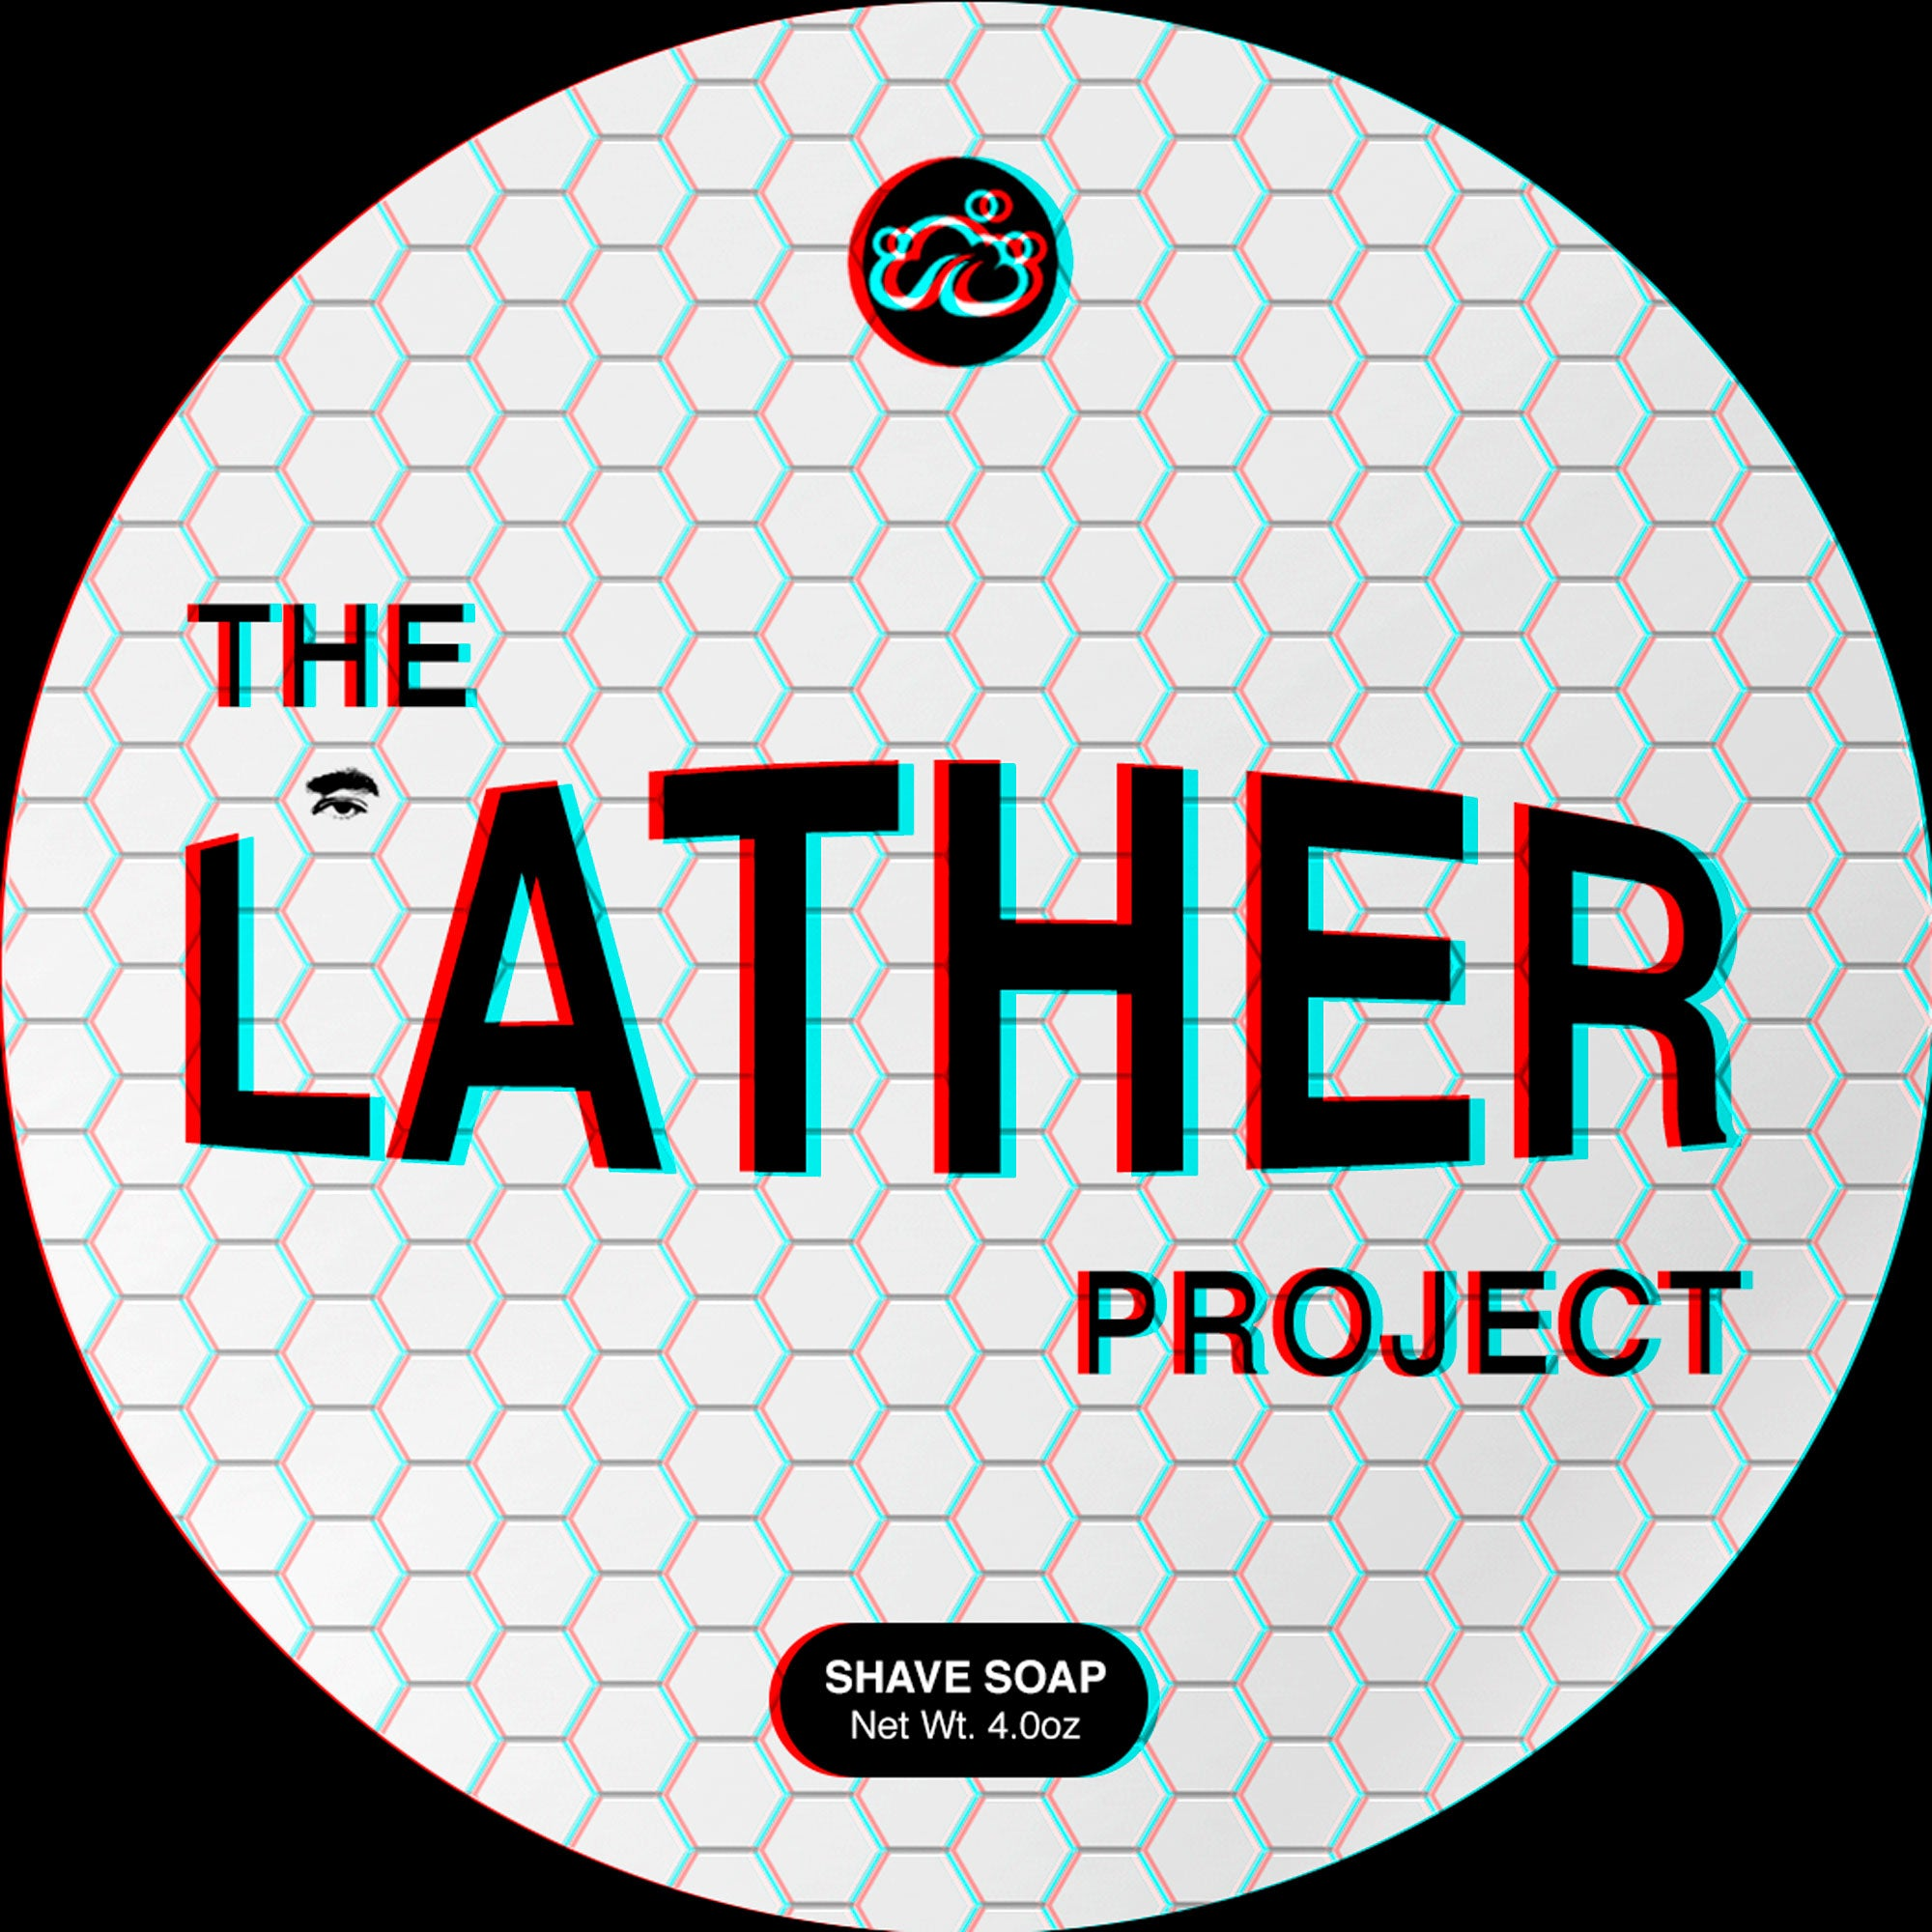 Lather Bros 3D Anaglyph Artwork by Project Major